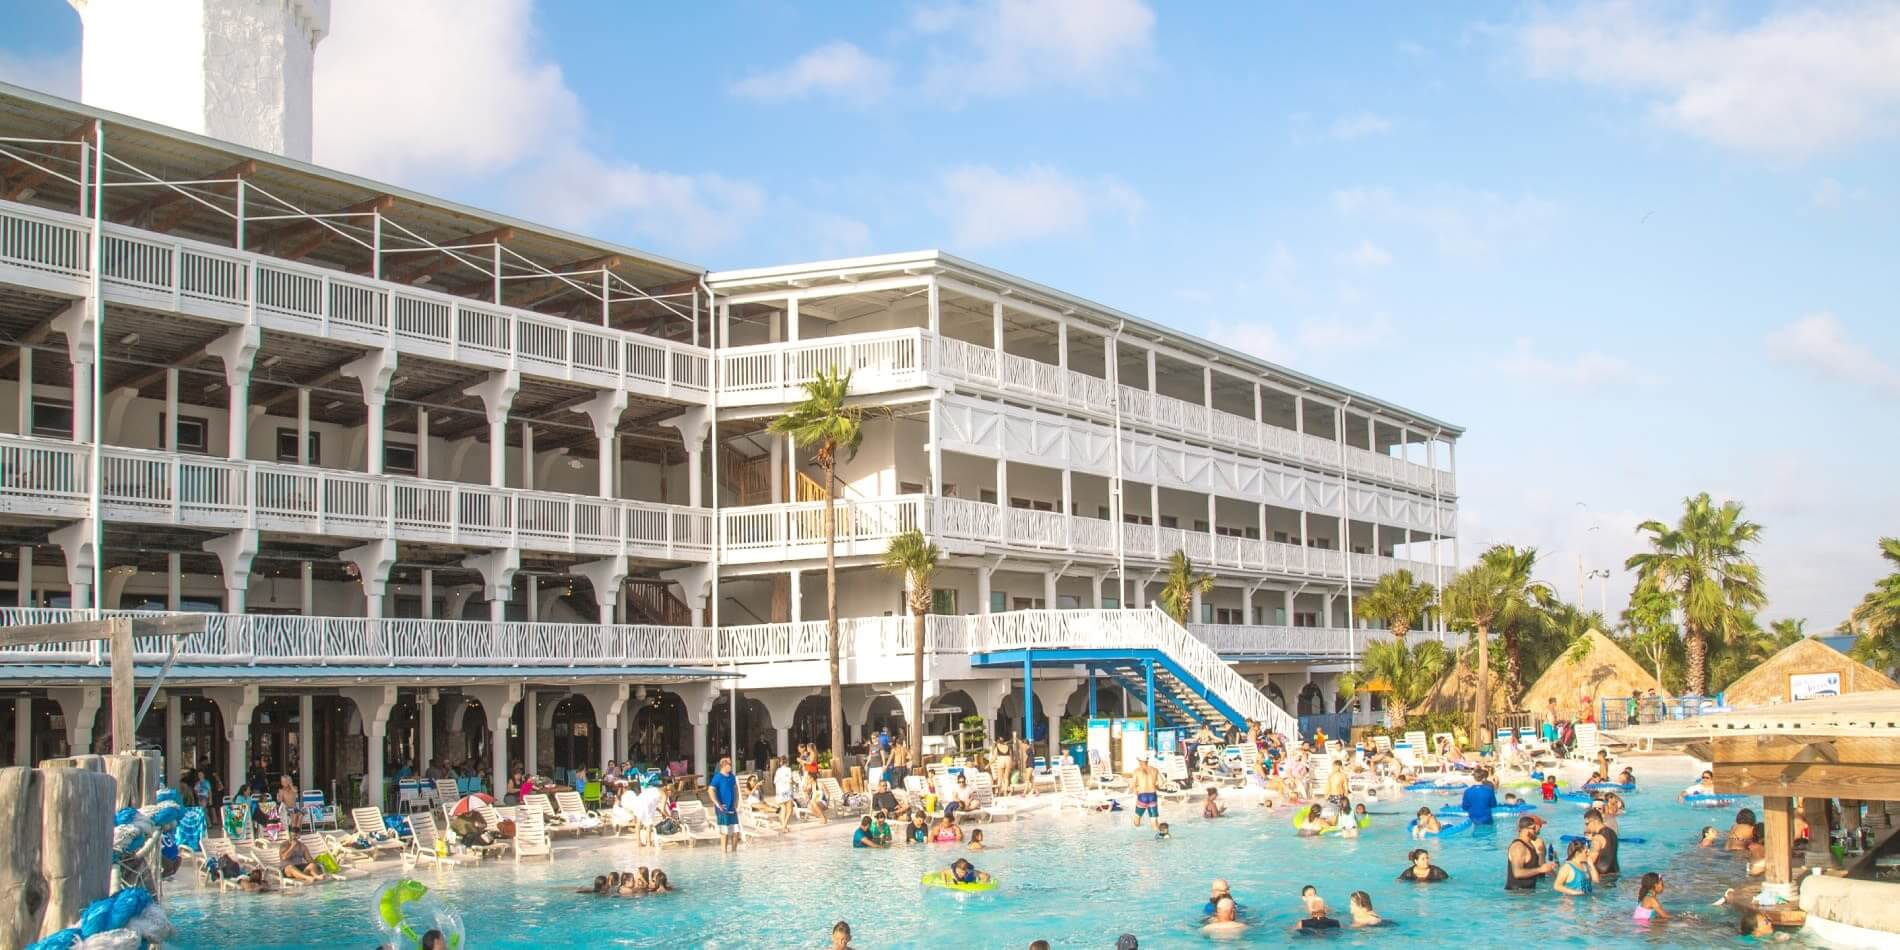 Benchmark adds Waves Resort Corpus Christi to management portfolio